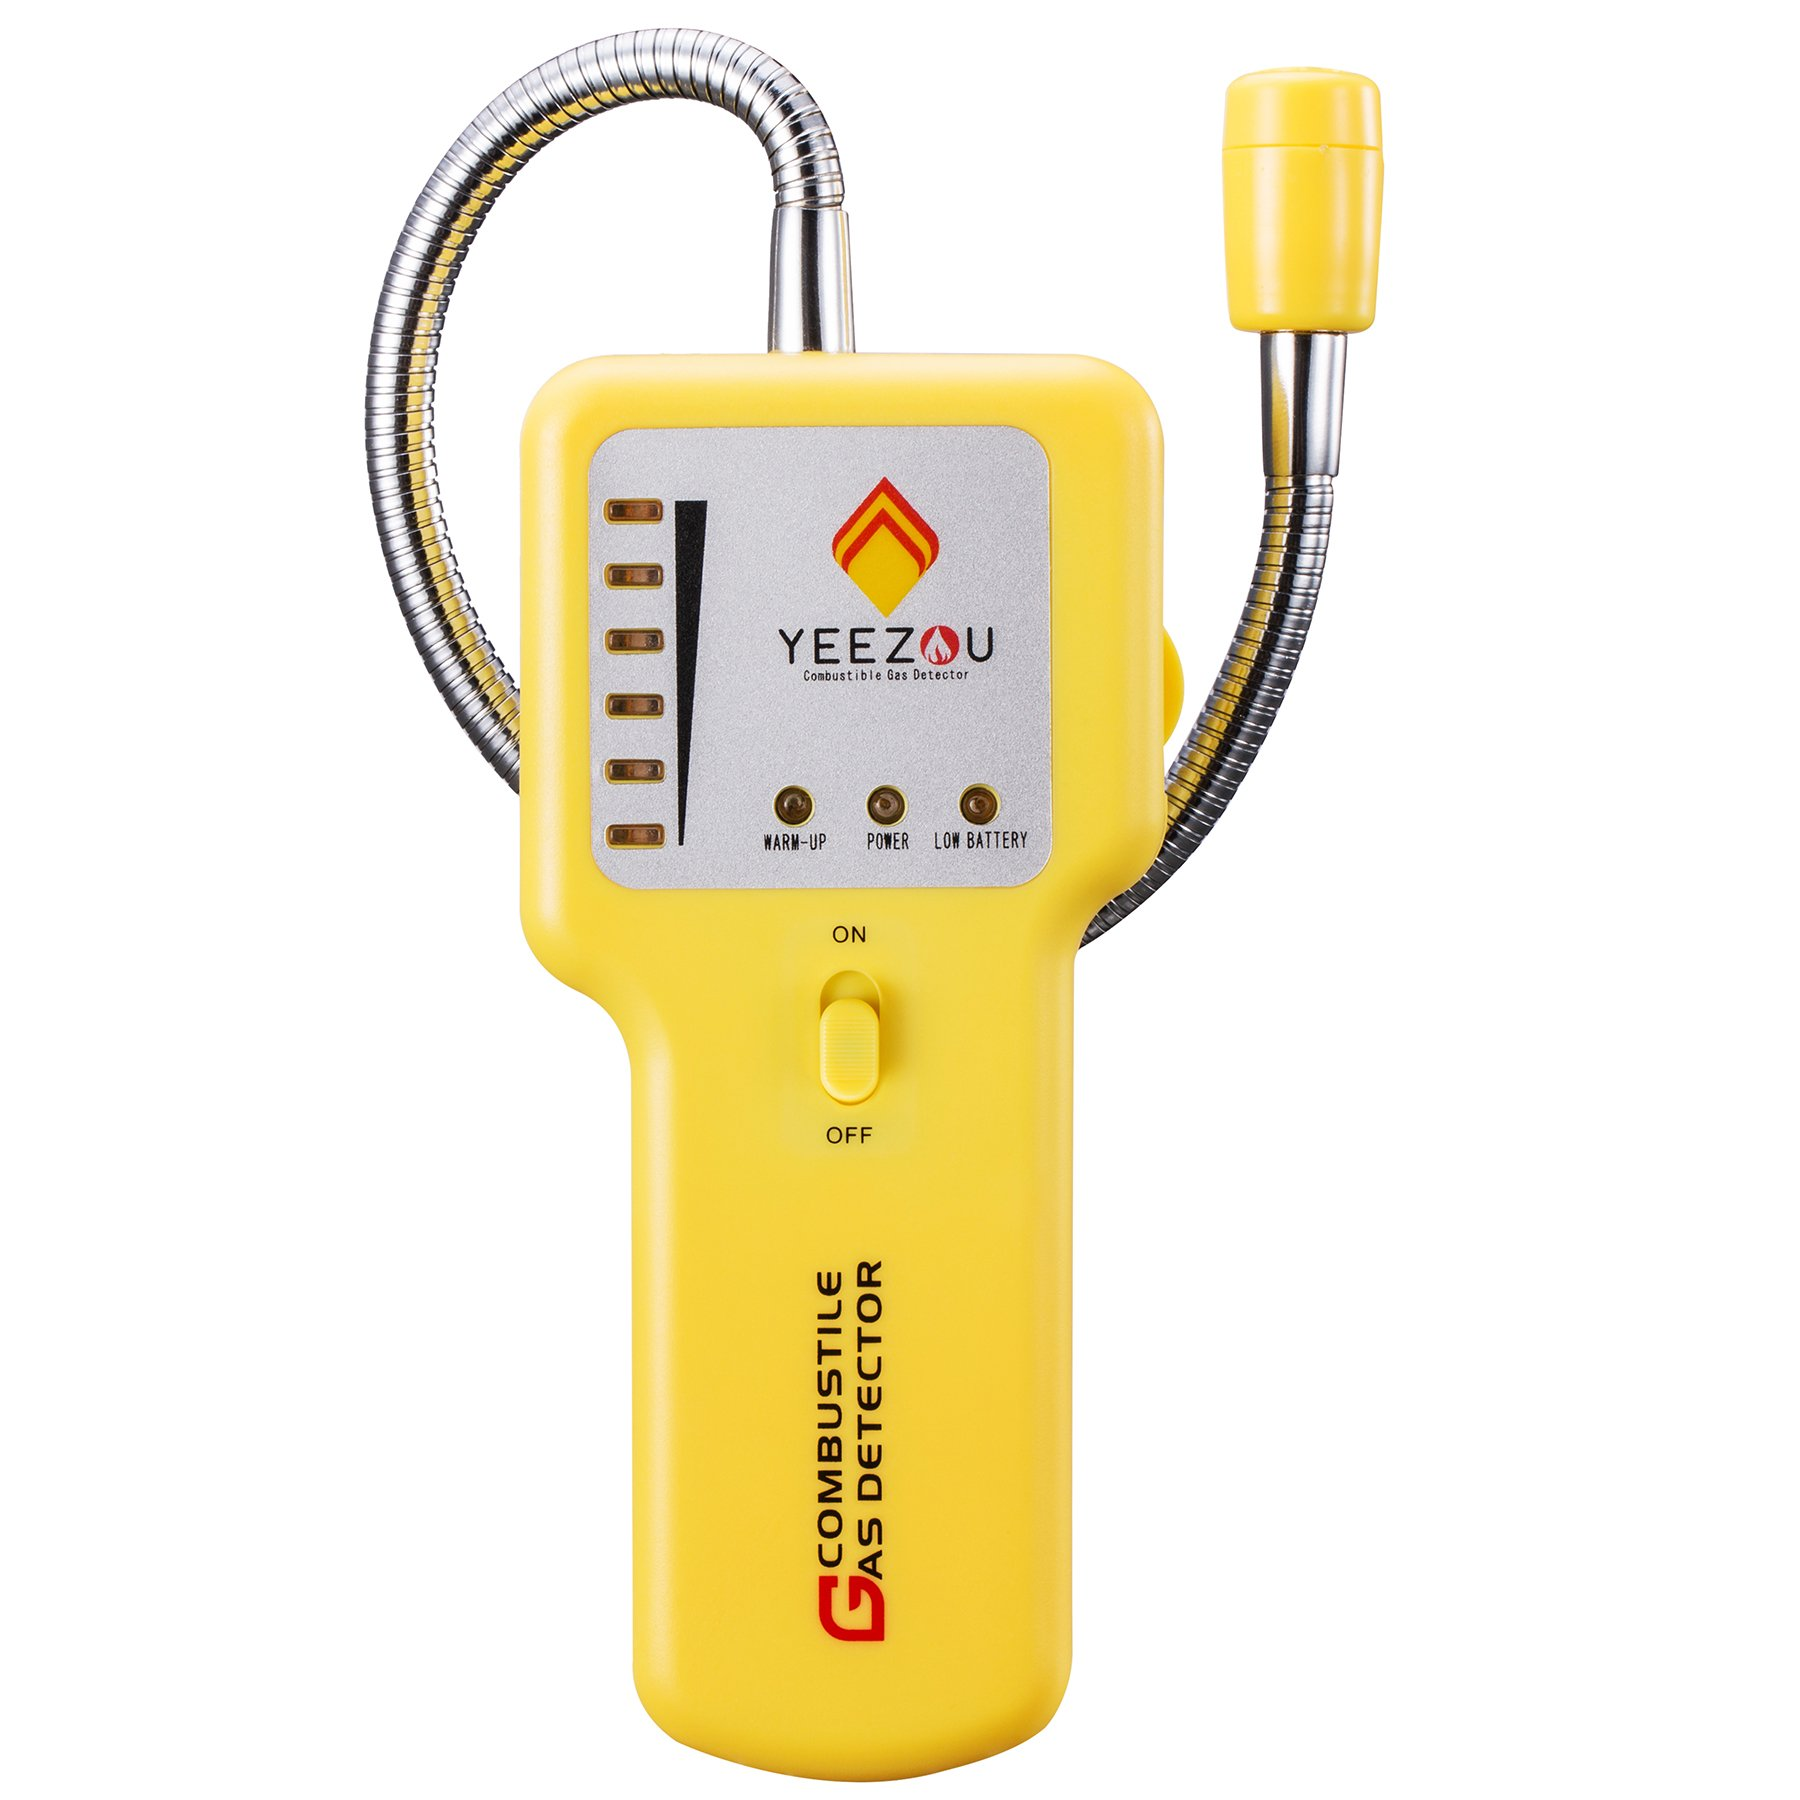 Natural Gas Detector,Portable Propane/Methane/Combustible Gas Sniffer Leak Sensor Alarm Tester with Sound Light Warning